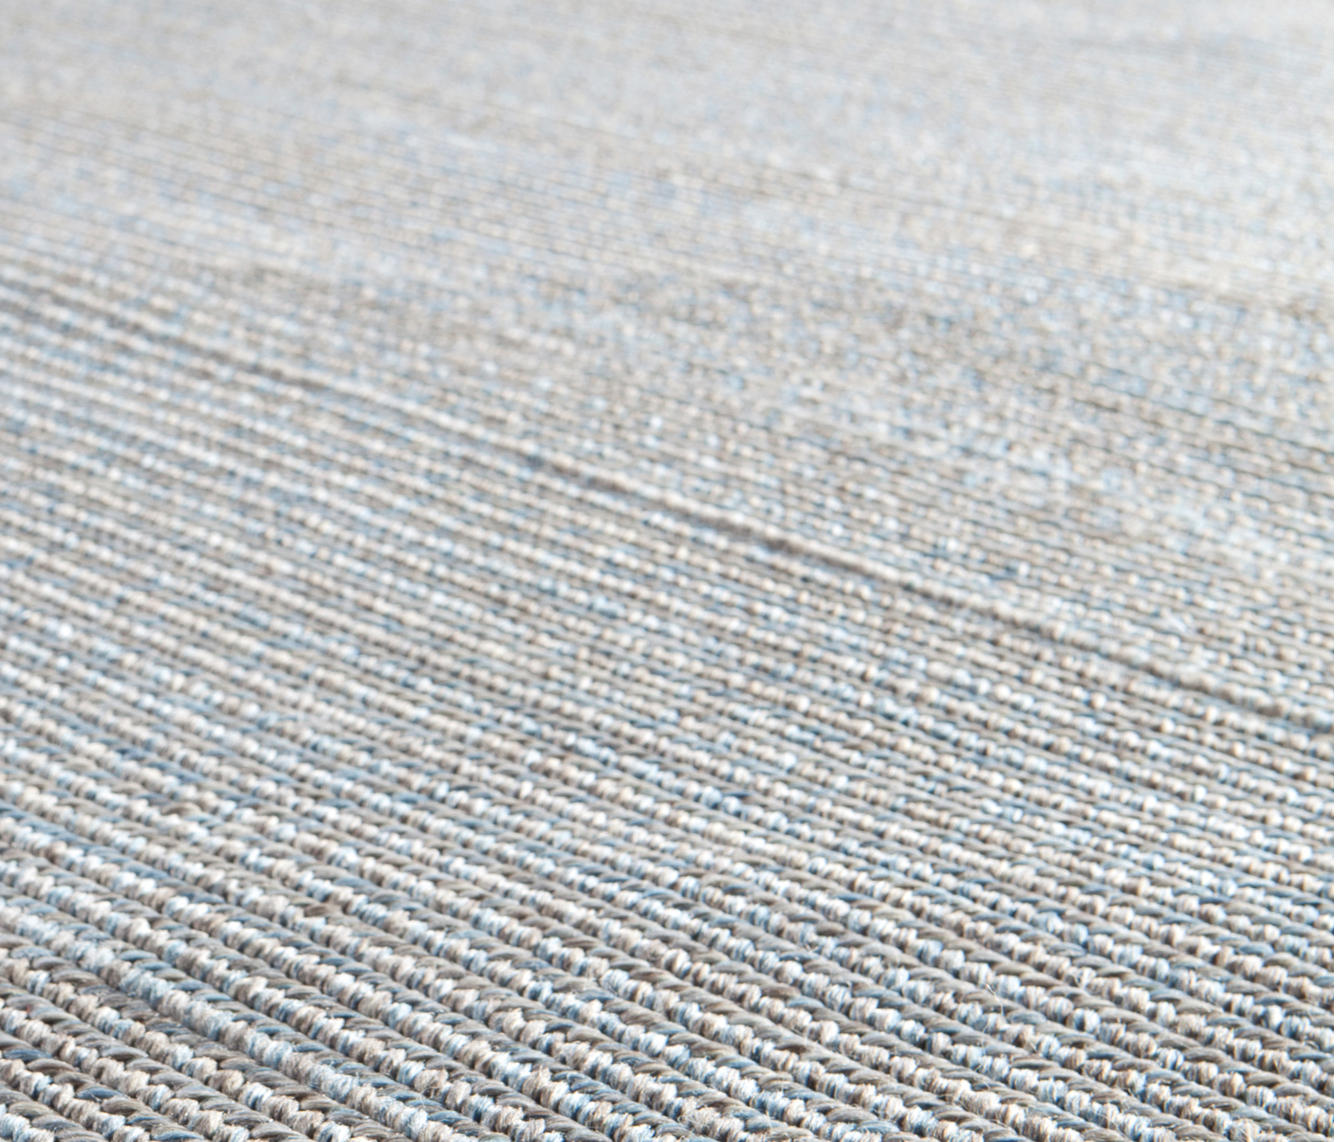 steps outdoor rug - outdoor rugs from manutti | architonic